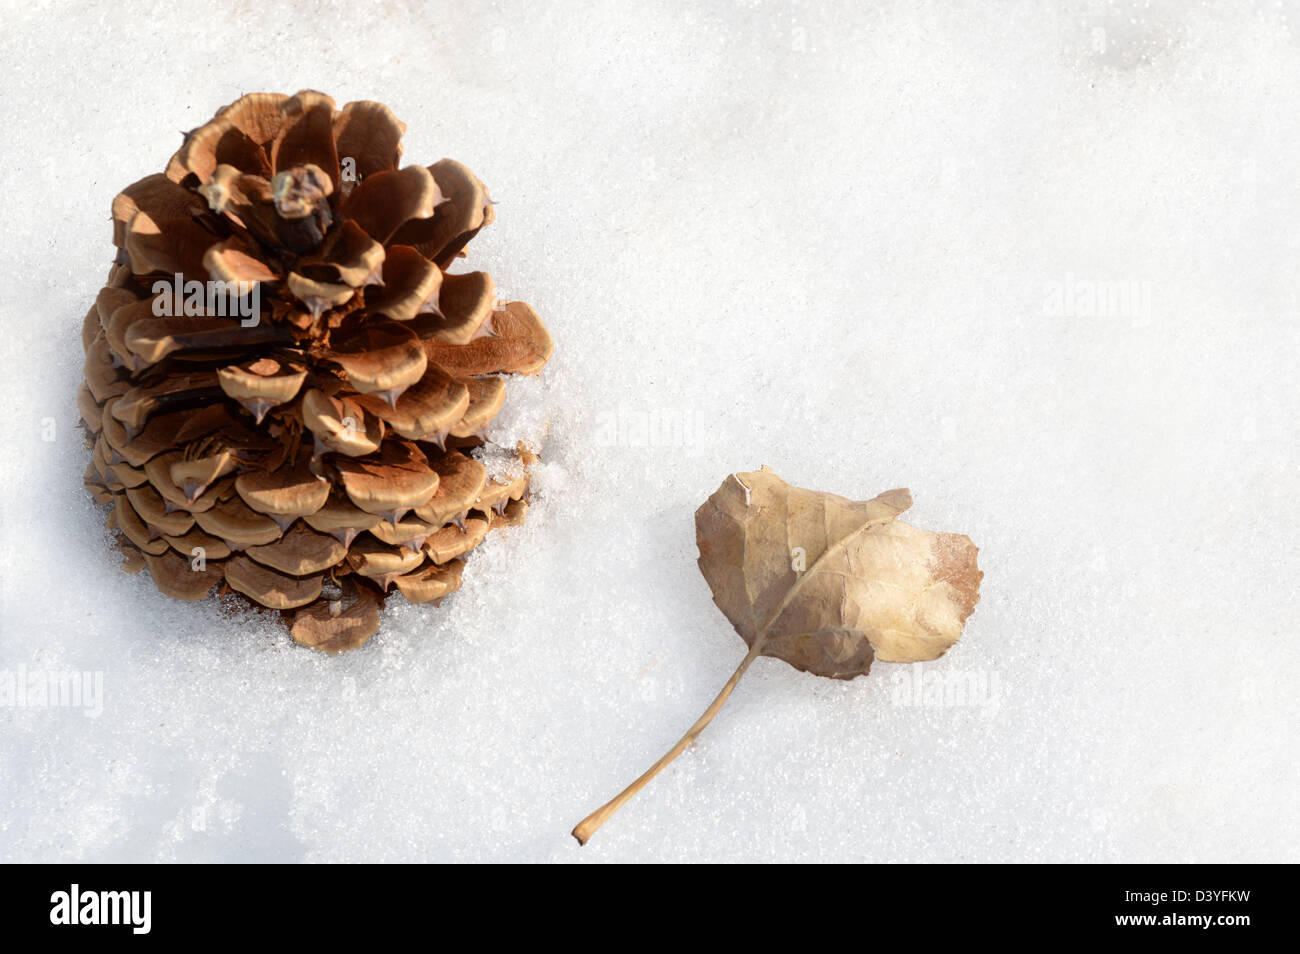 Conifer cone and cottonwood leaf on snow - Stock Image